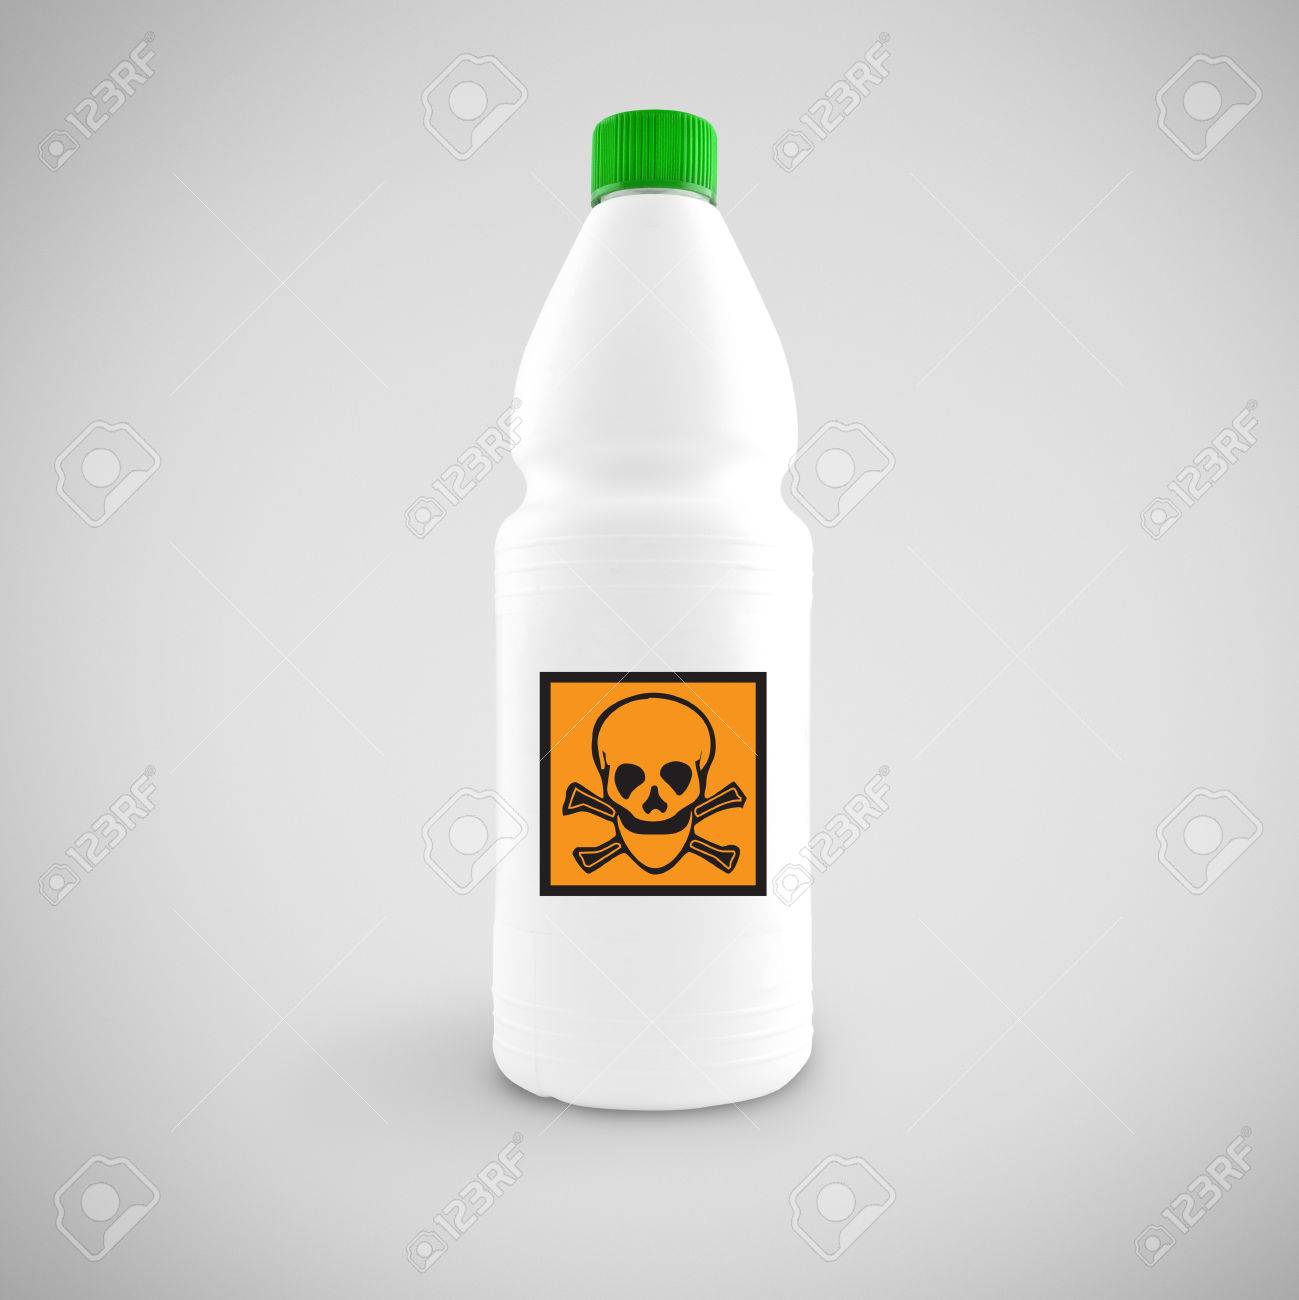 Bottle of chemical liquid with hazard symbol for toxic material - 30422490